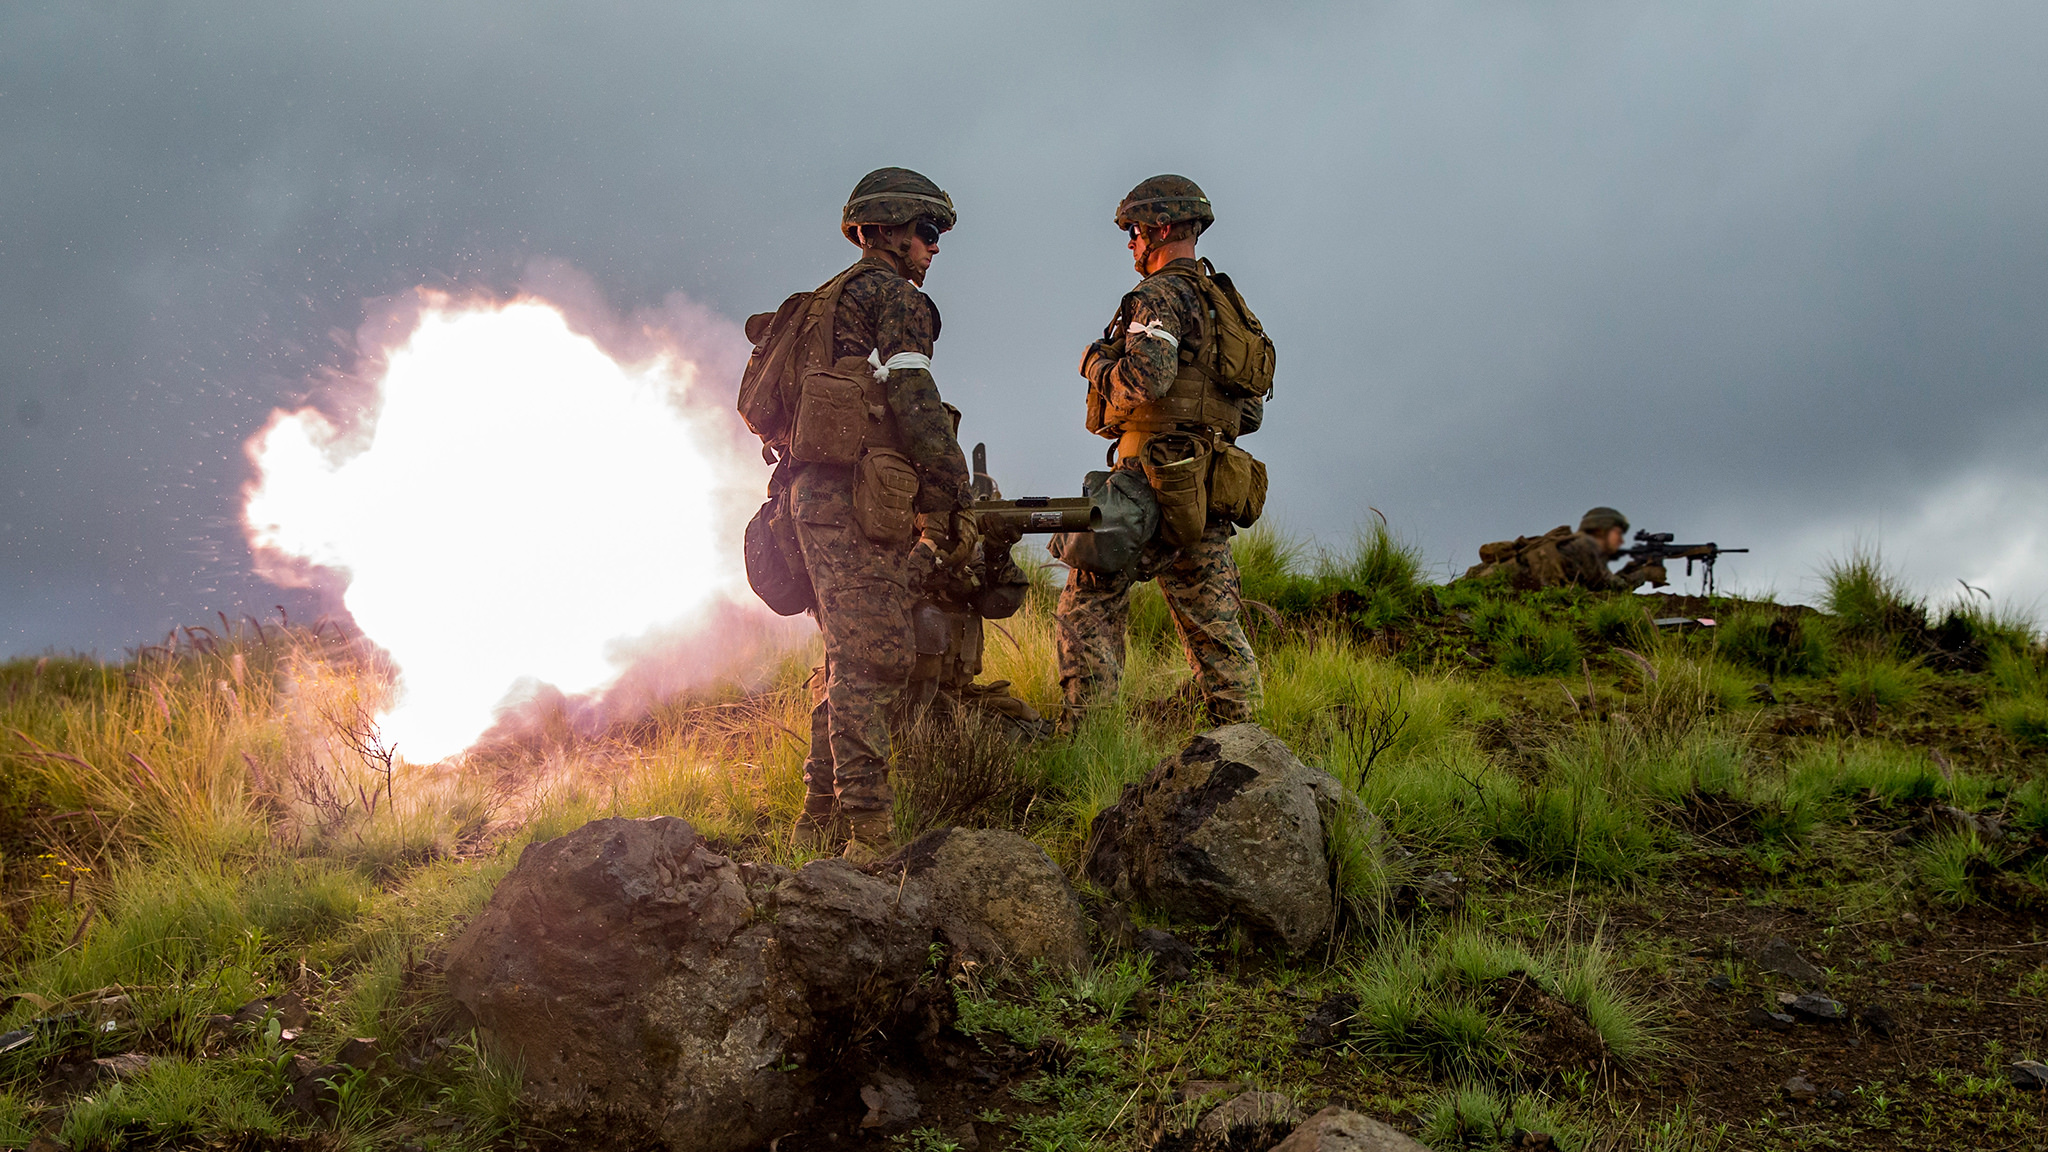 A Marine fires a Light Anti-Armor Weapon (LAW) on Oct. 22, 2018, during Exercise Bougainville II at the Pohakuloa Training Area on the Island of Hawaii. (Sgt. Ricky Gomez/Marine Corps)